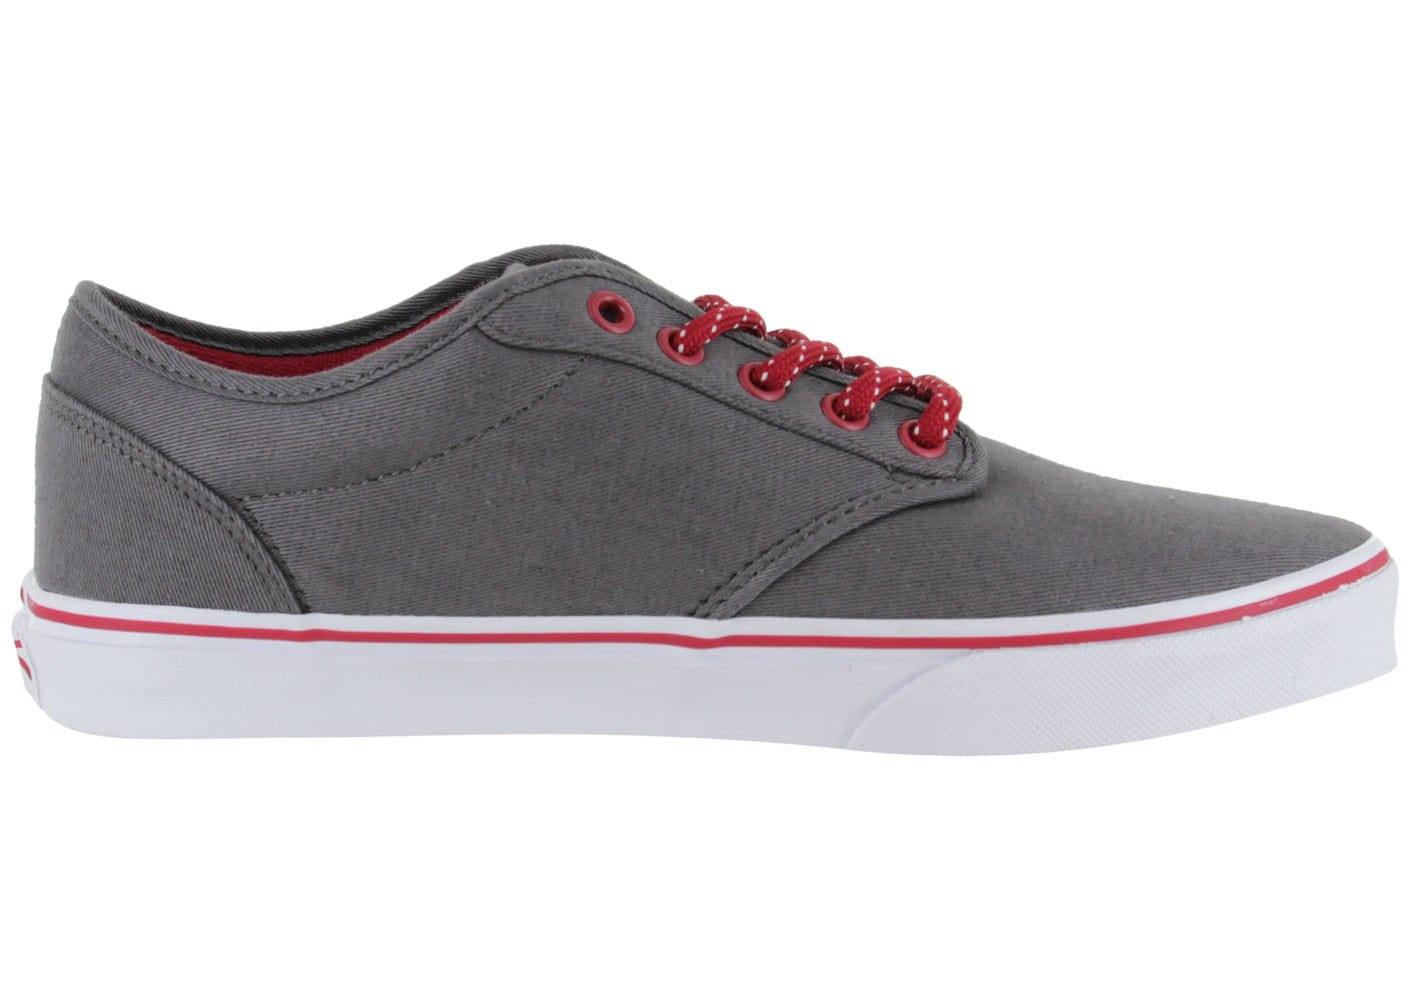 Vans Atwood Txt Grise Chaussures Baskets homme Chausport